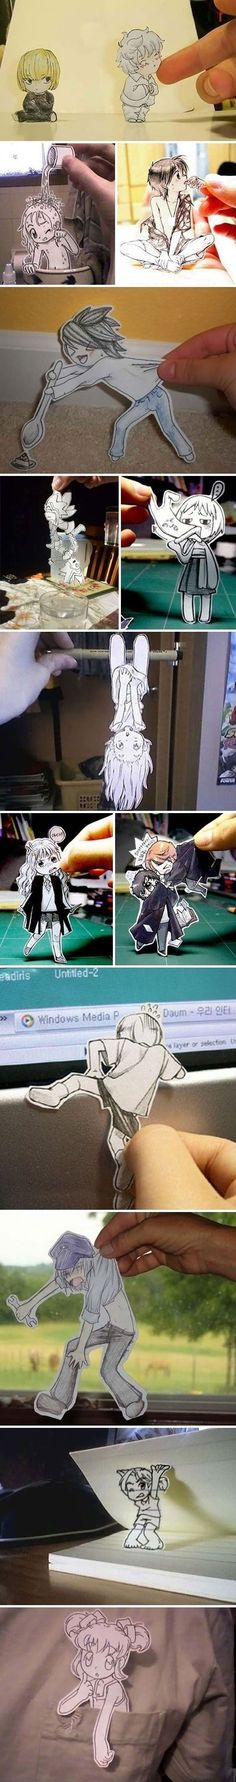 Anime Cut-outs Plus